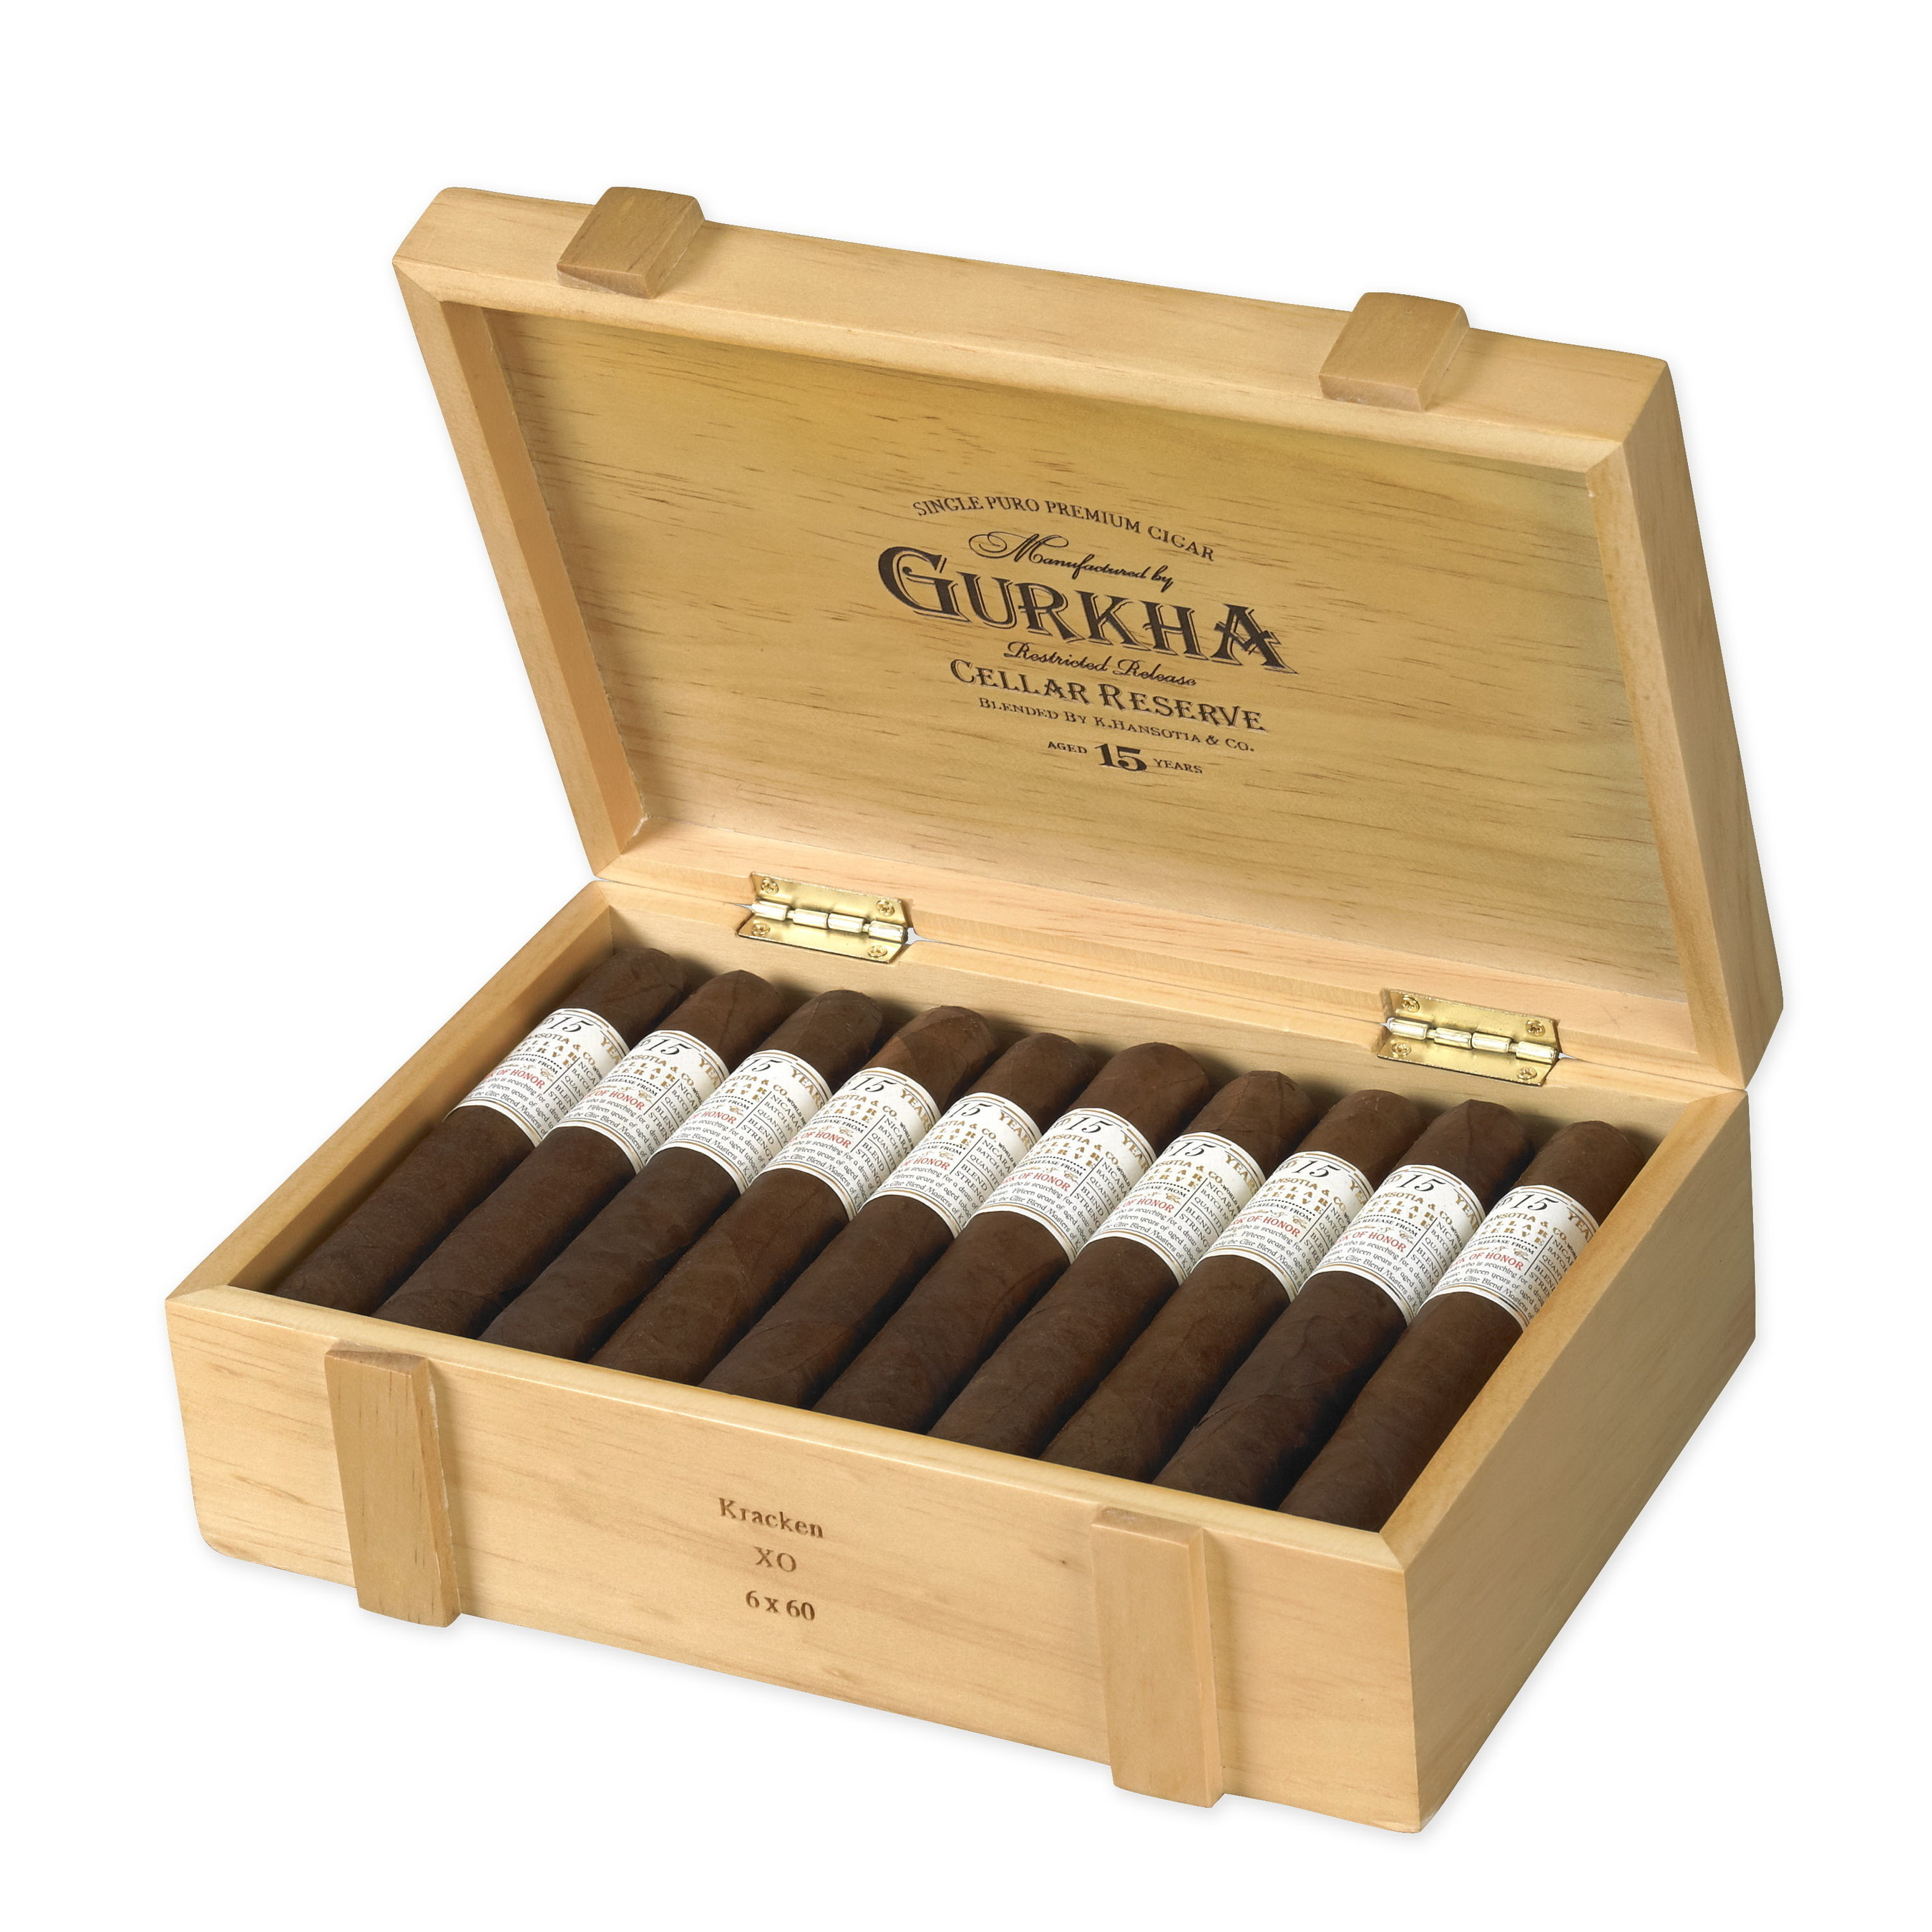 The 10 Best Rated Cigars In The World